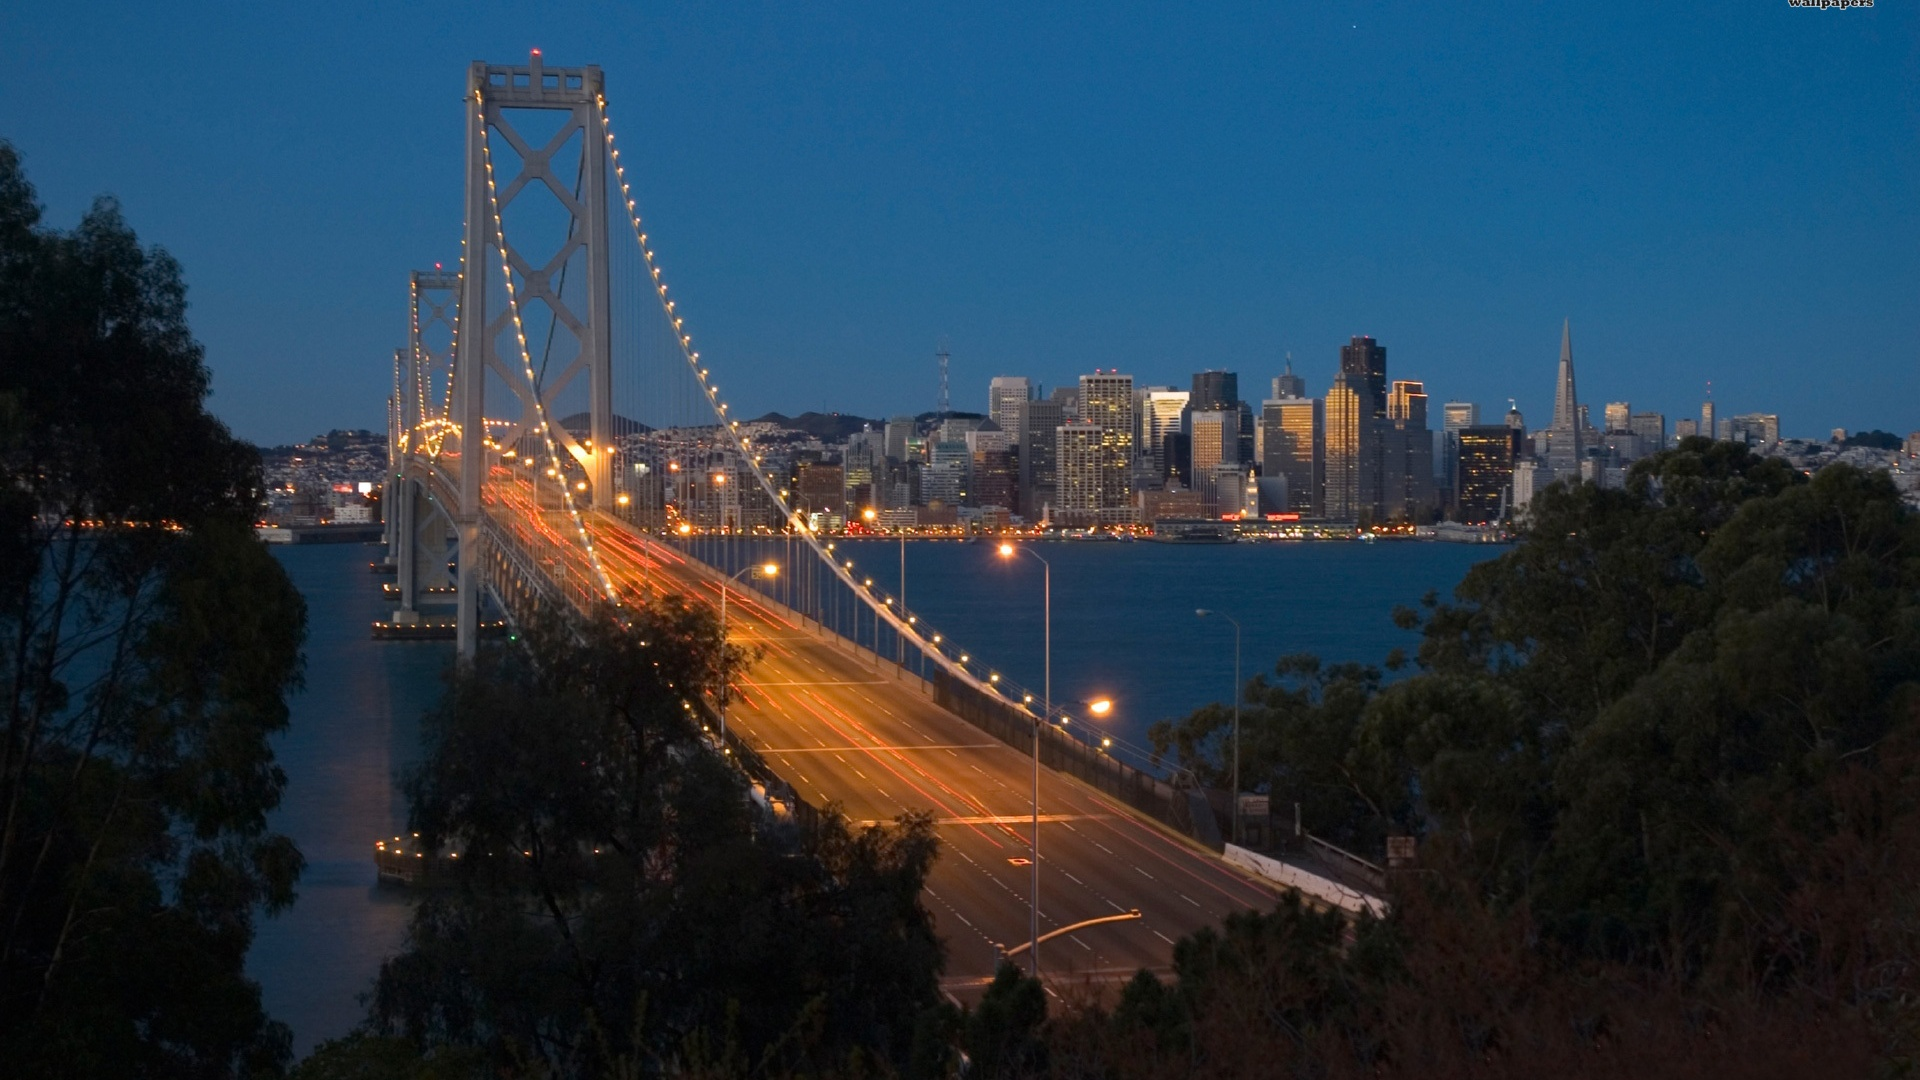 1920x1080 San Francisco Bay Bridge Dusk desktop PC and Mac wallpaper 1920x1080